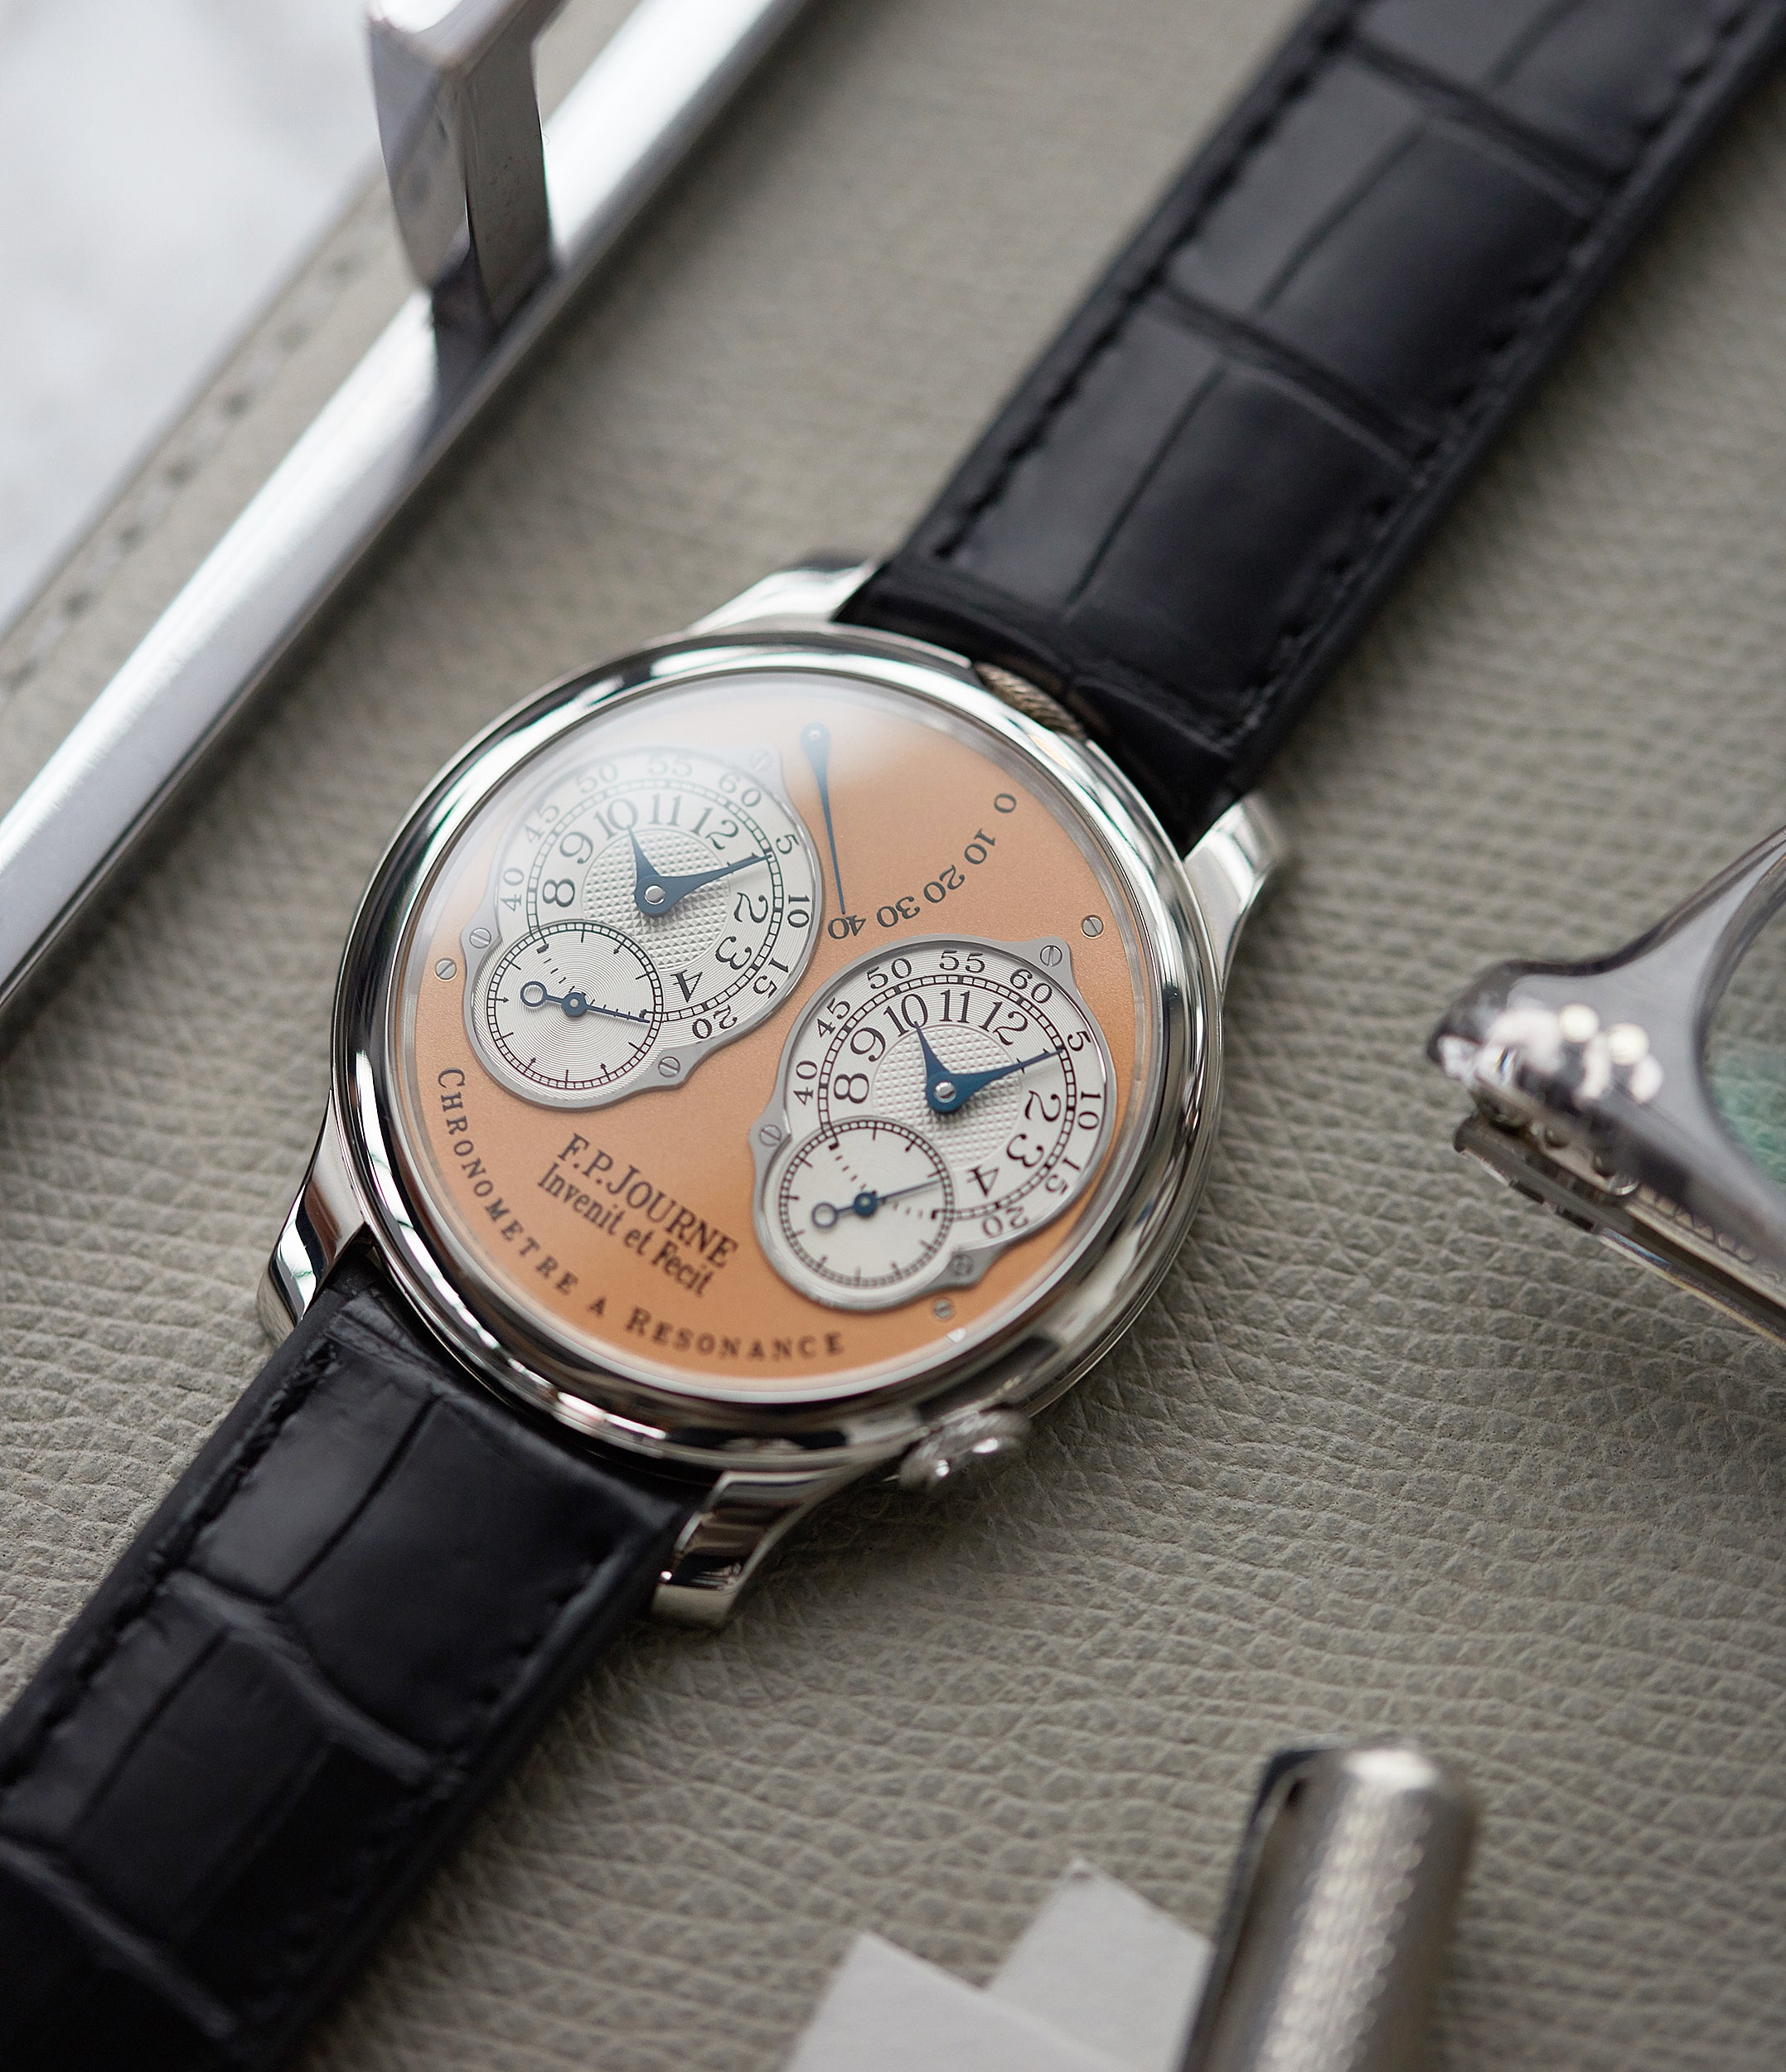 selling F. P. Journe Chronometre a Resonance platinum watch gold movement for sale online at A Collected Man London Uk specialist of independent watchmakers